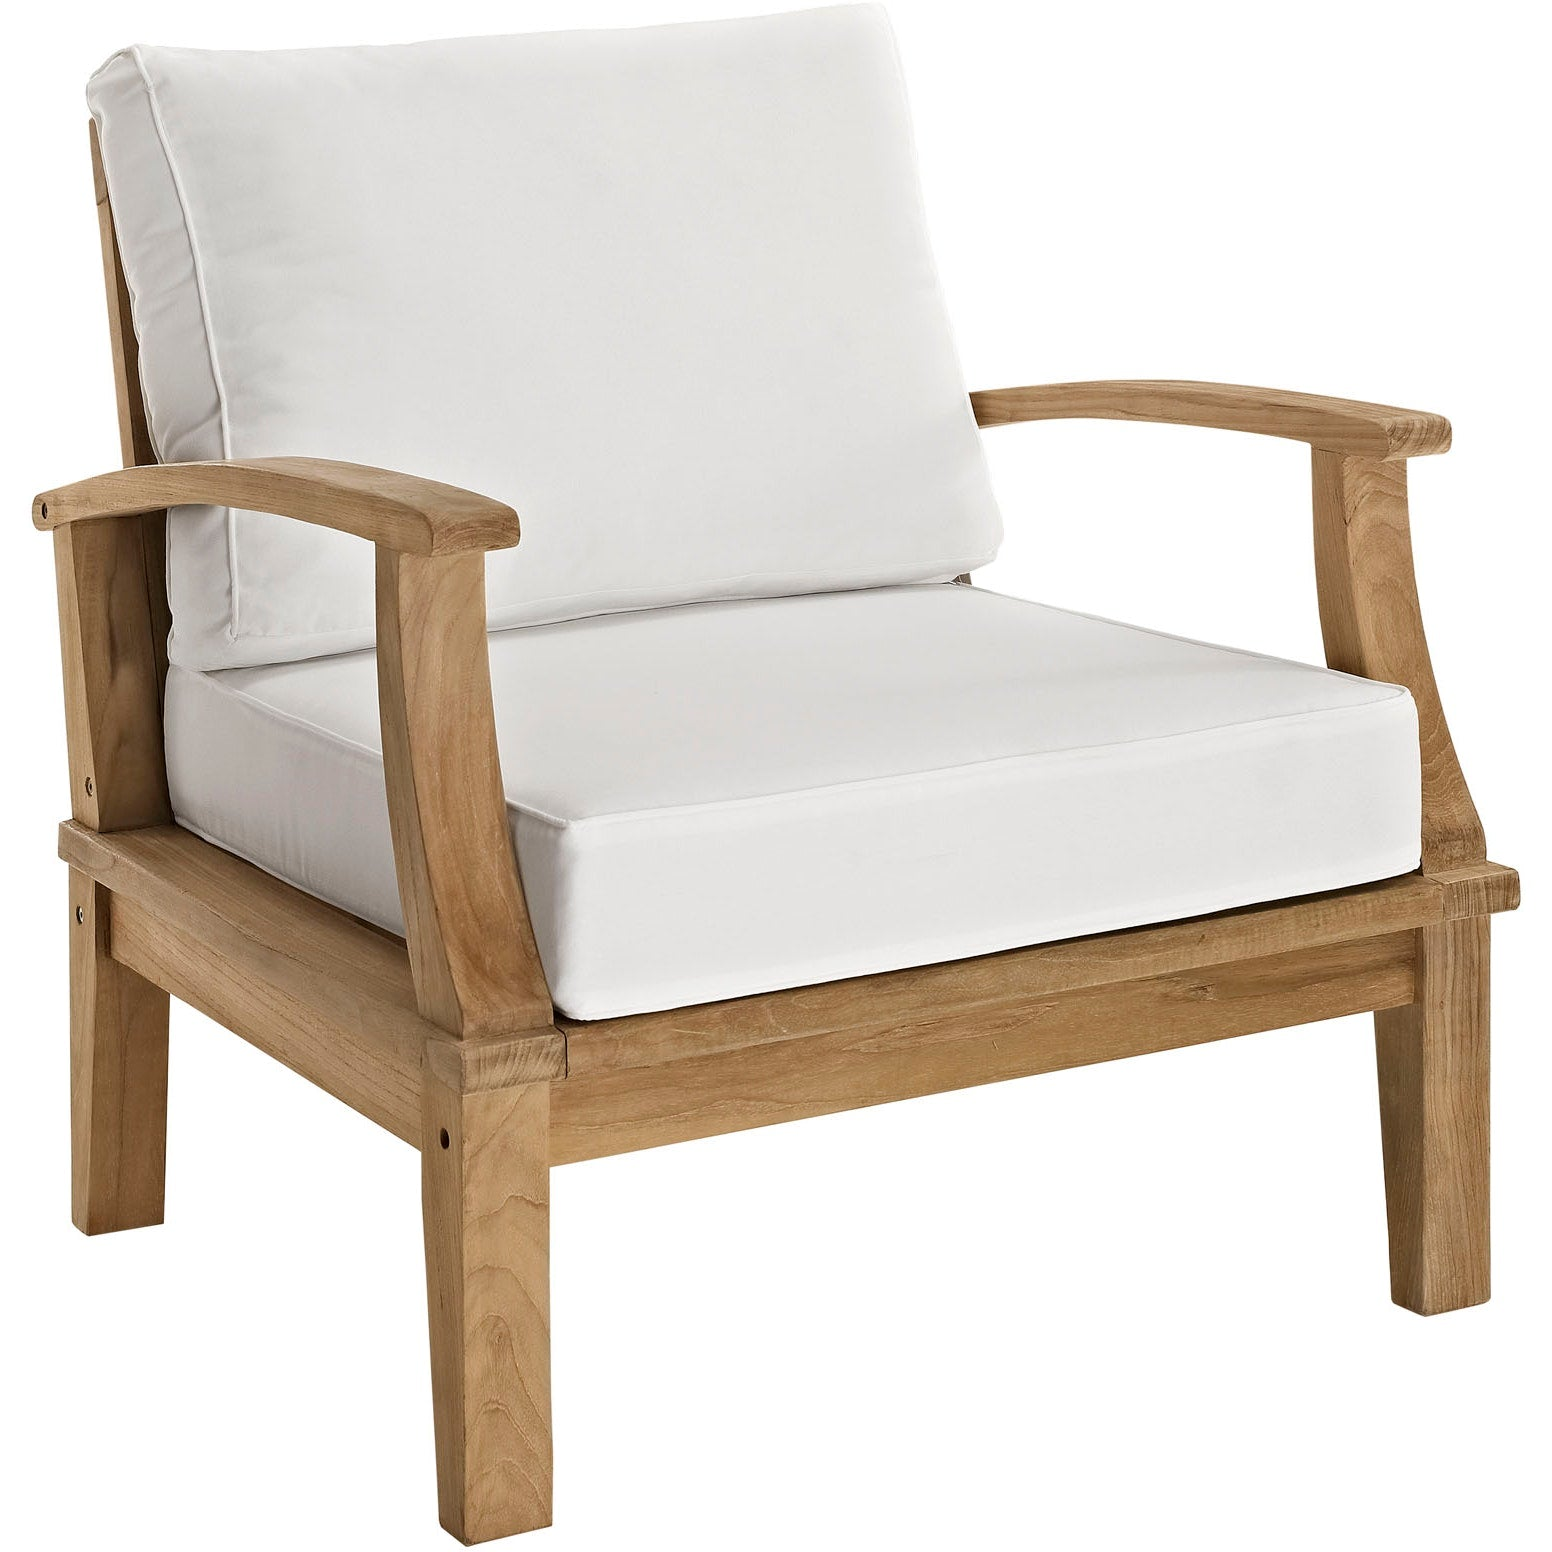 Marina 2 Piece Outdoor Patio Teak Set - Natural White